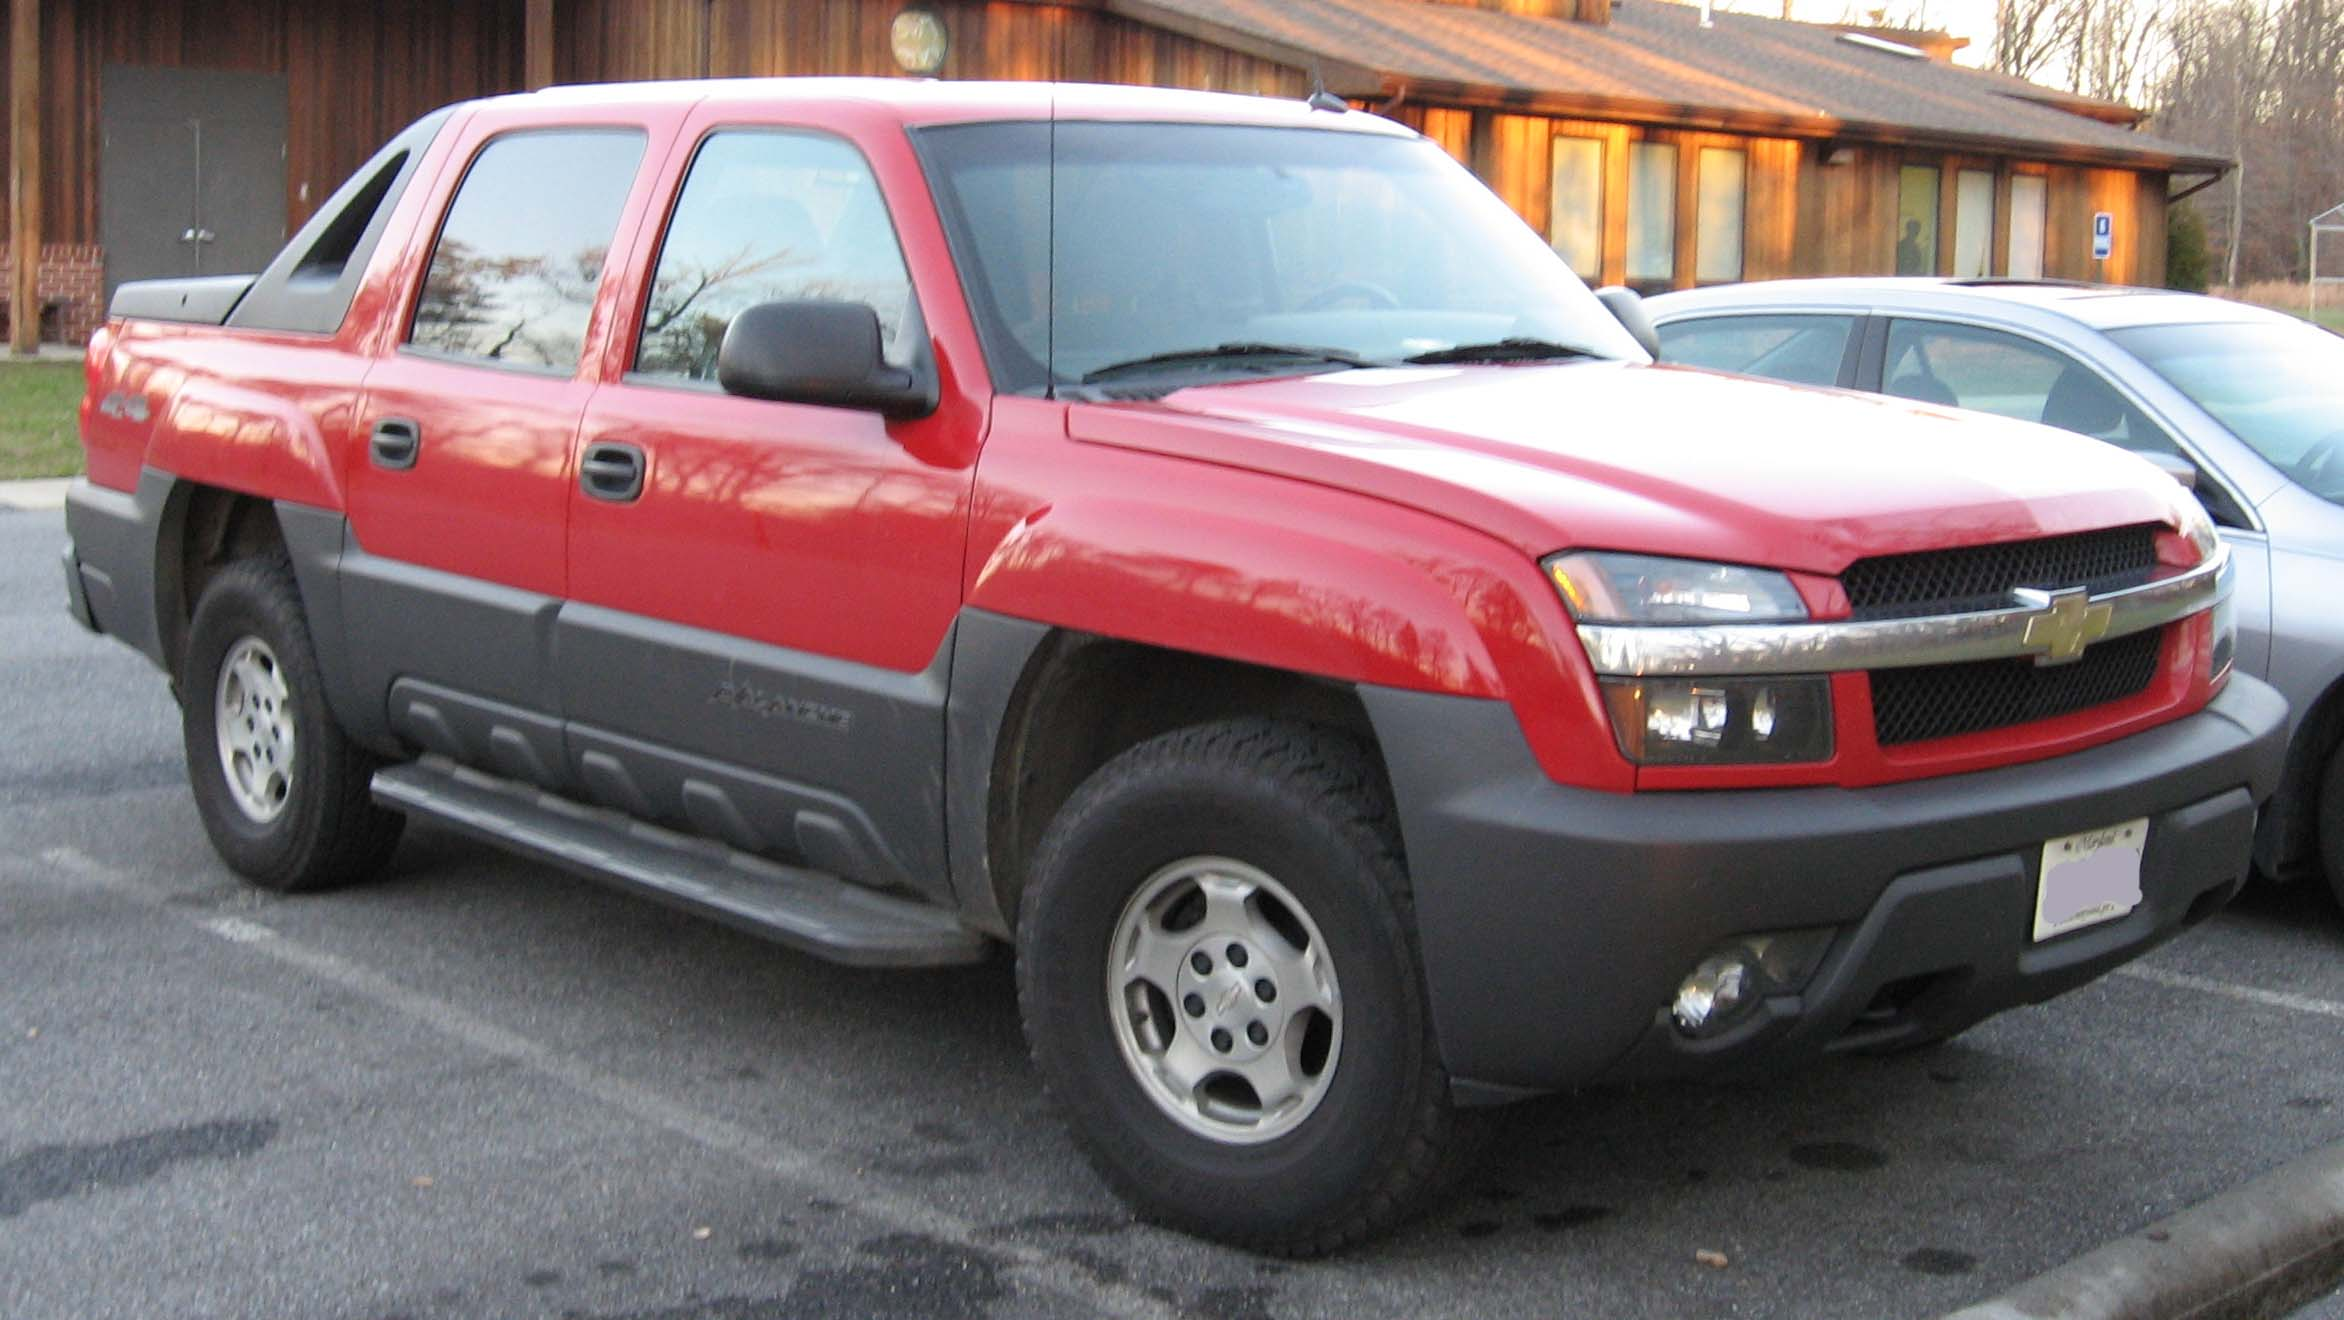 Chevrolet Avalanche red #1